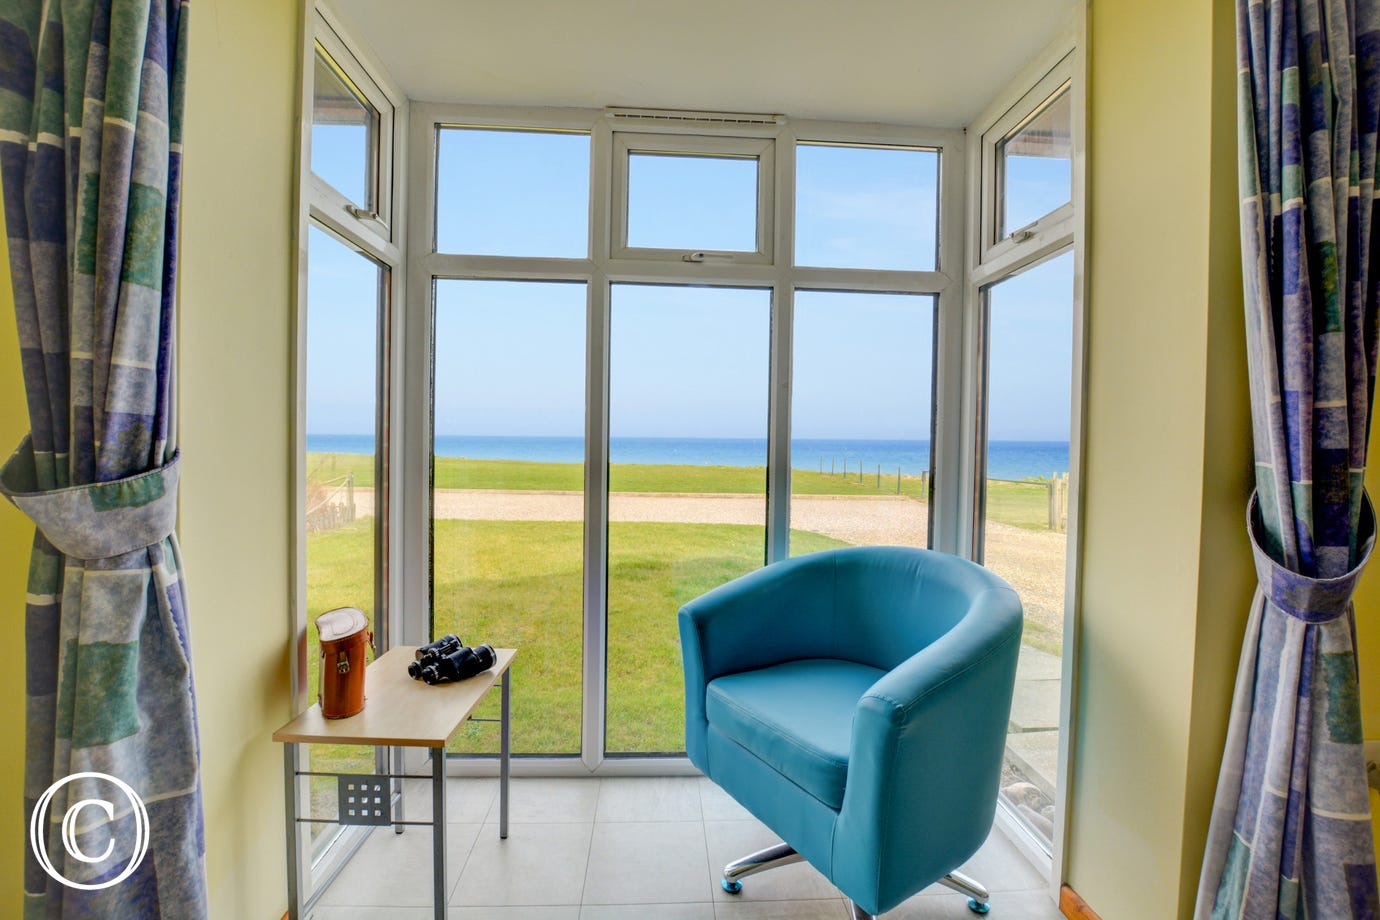 Views to the sea from the sitting room.